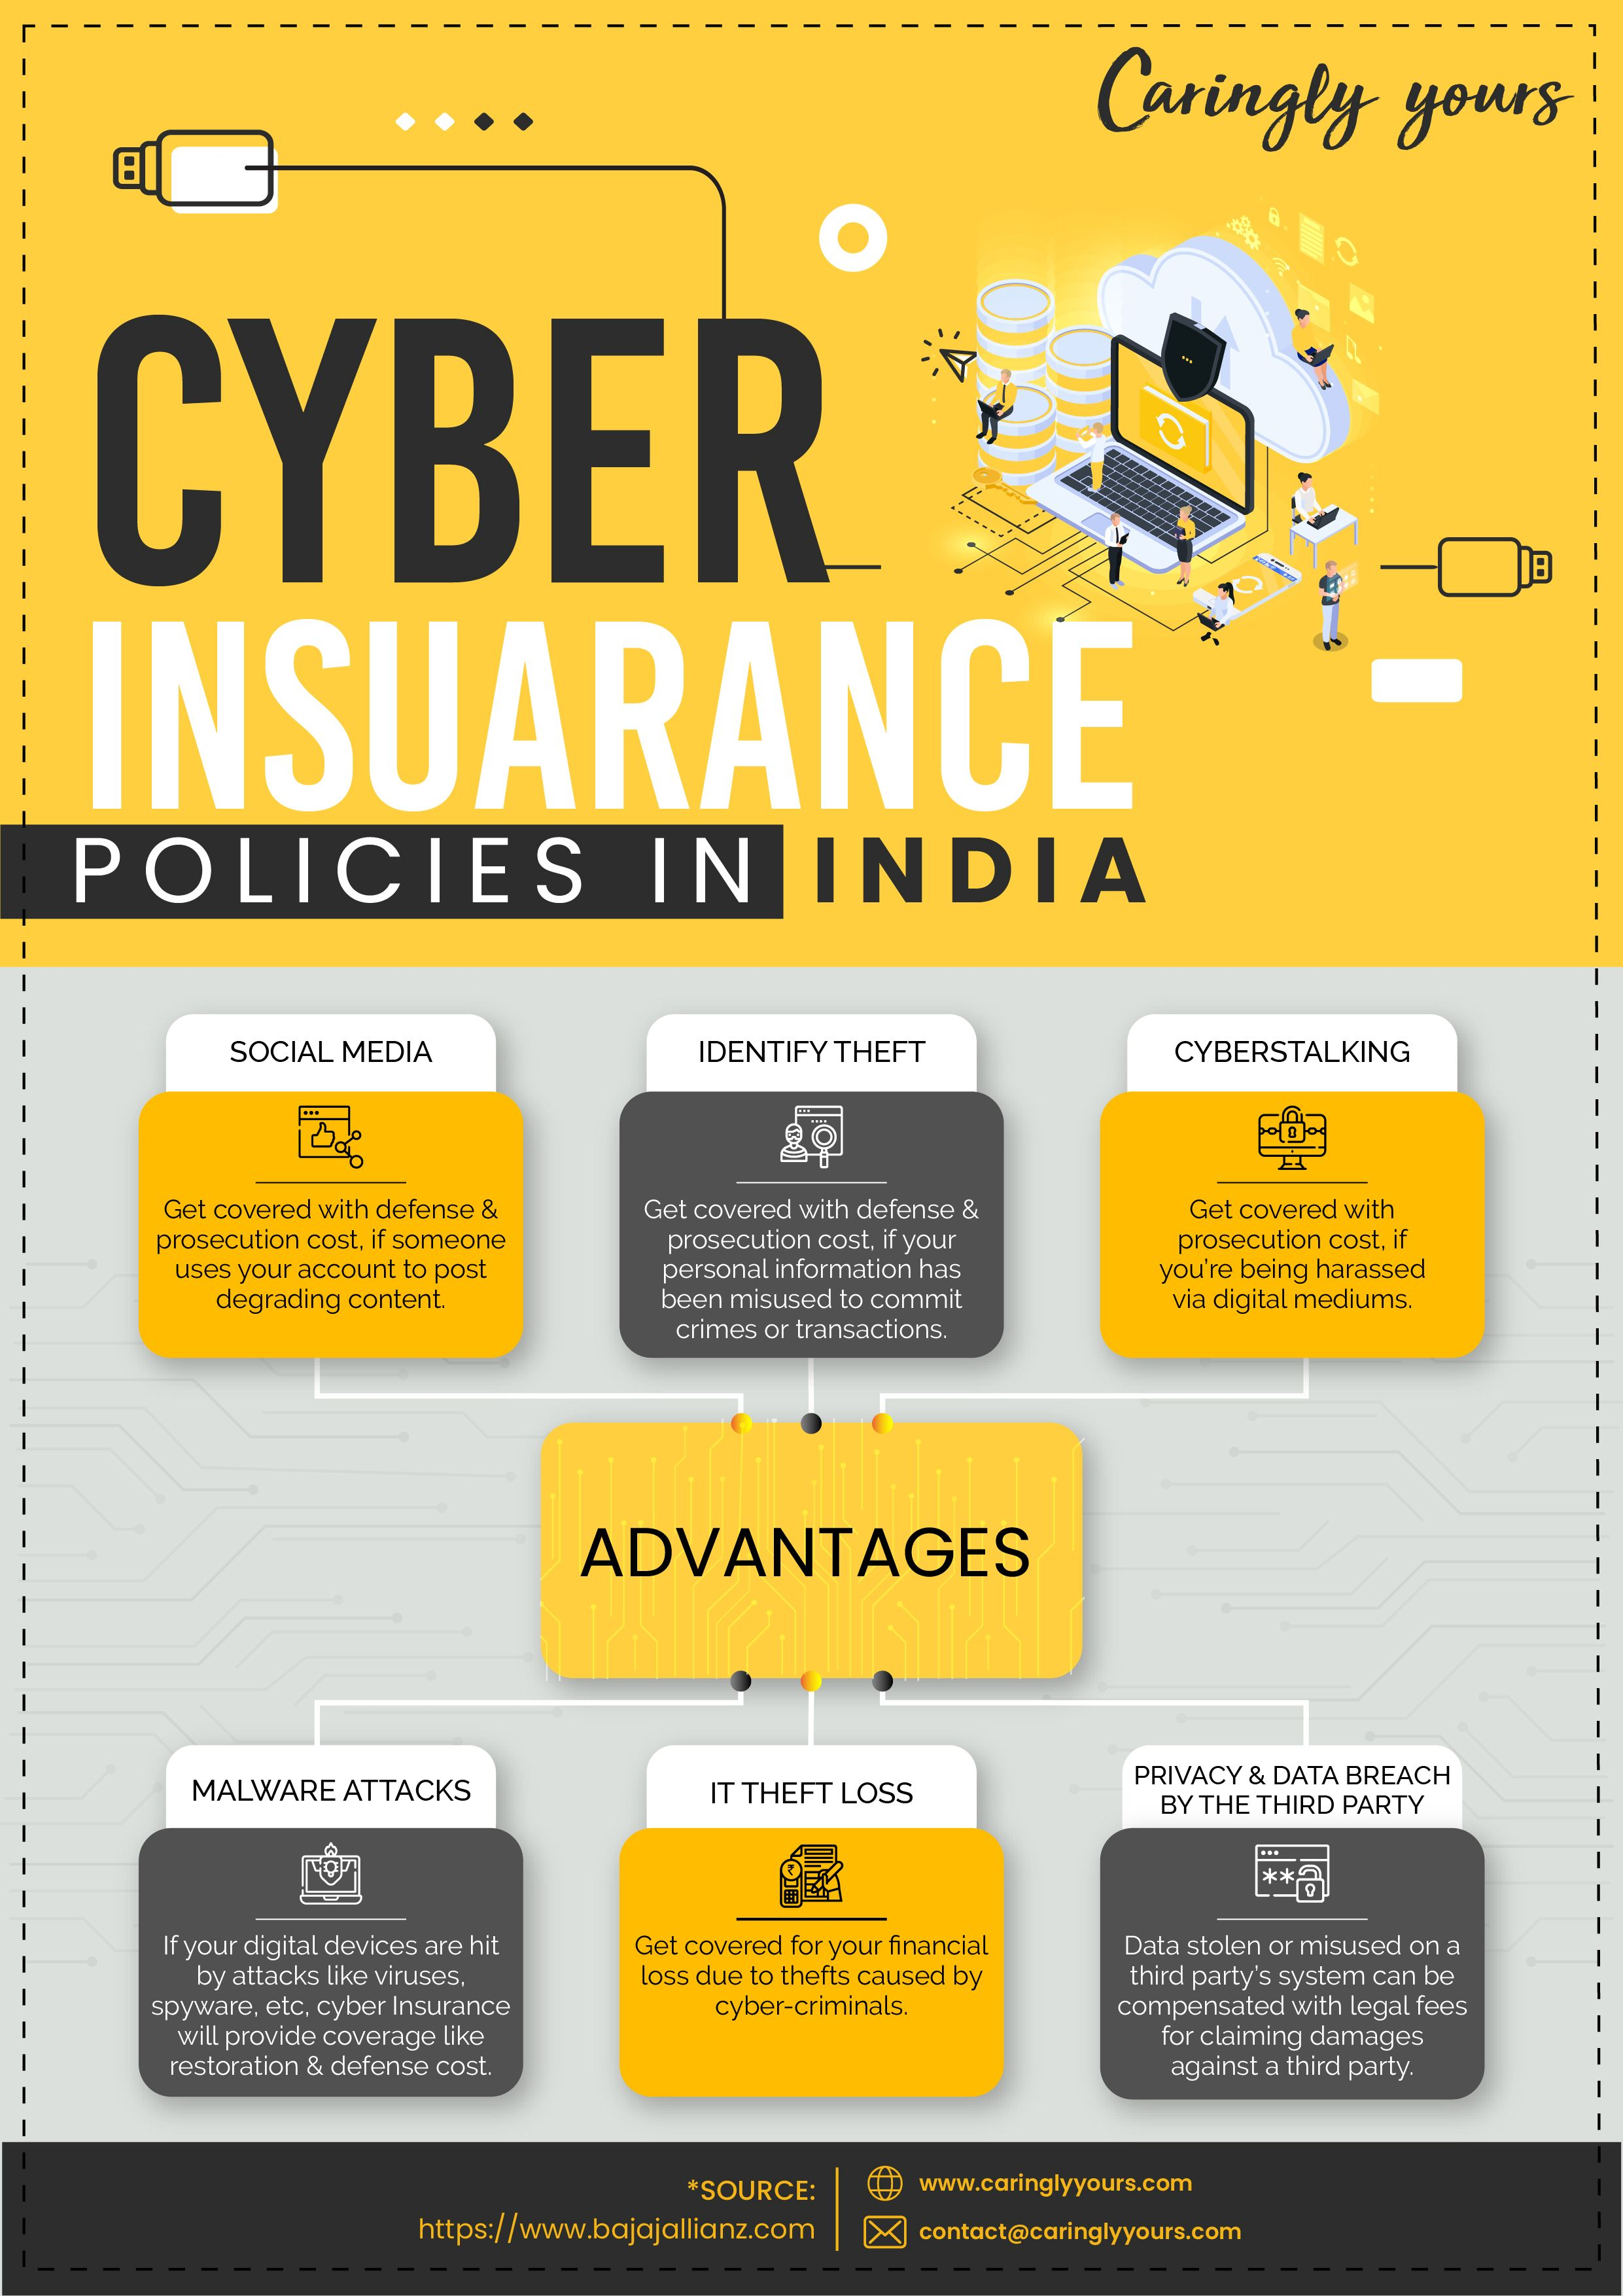 cyber insurance policies in india Caringlyyours in 2020